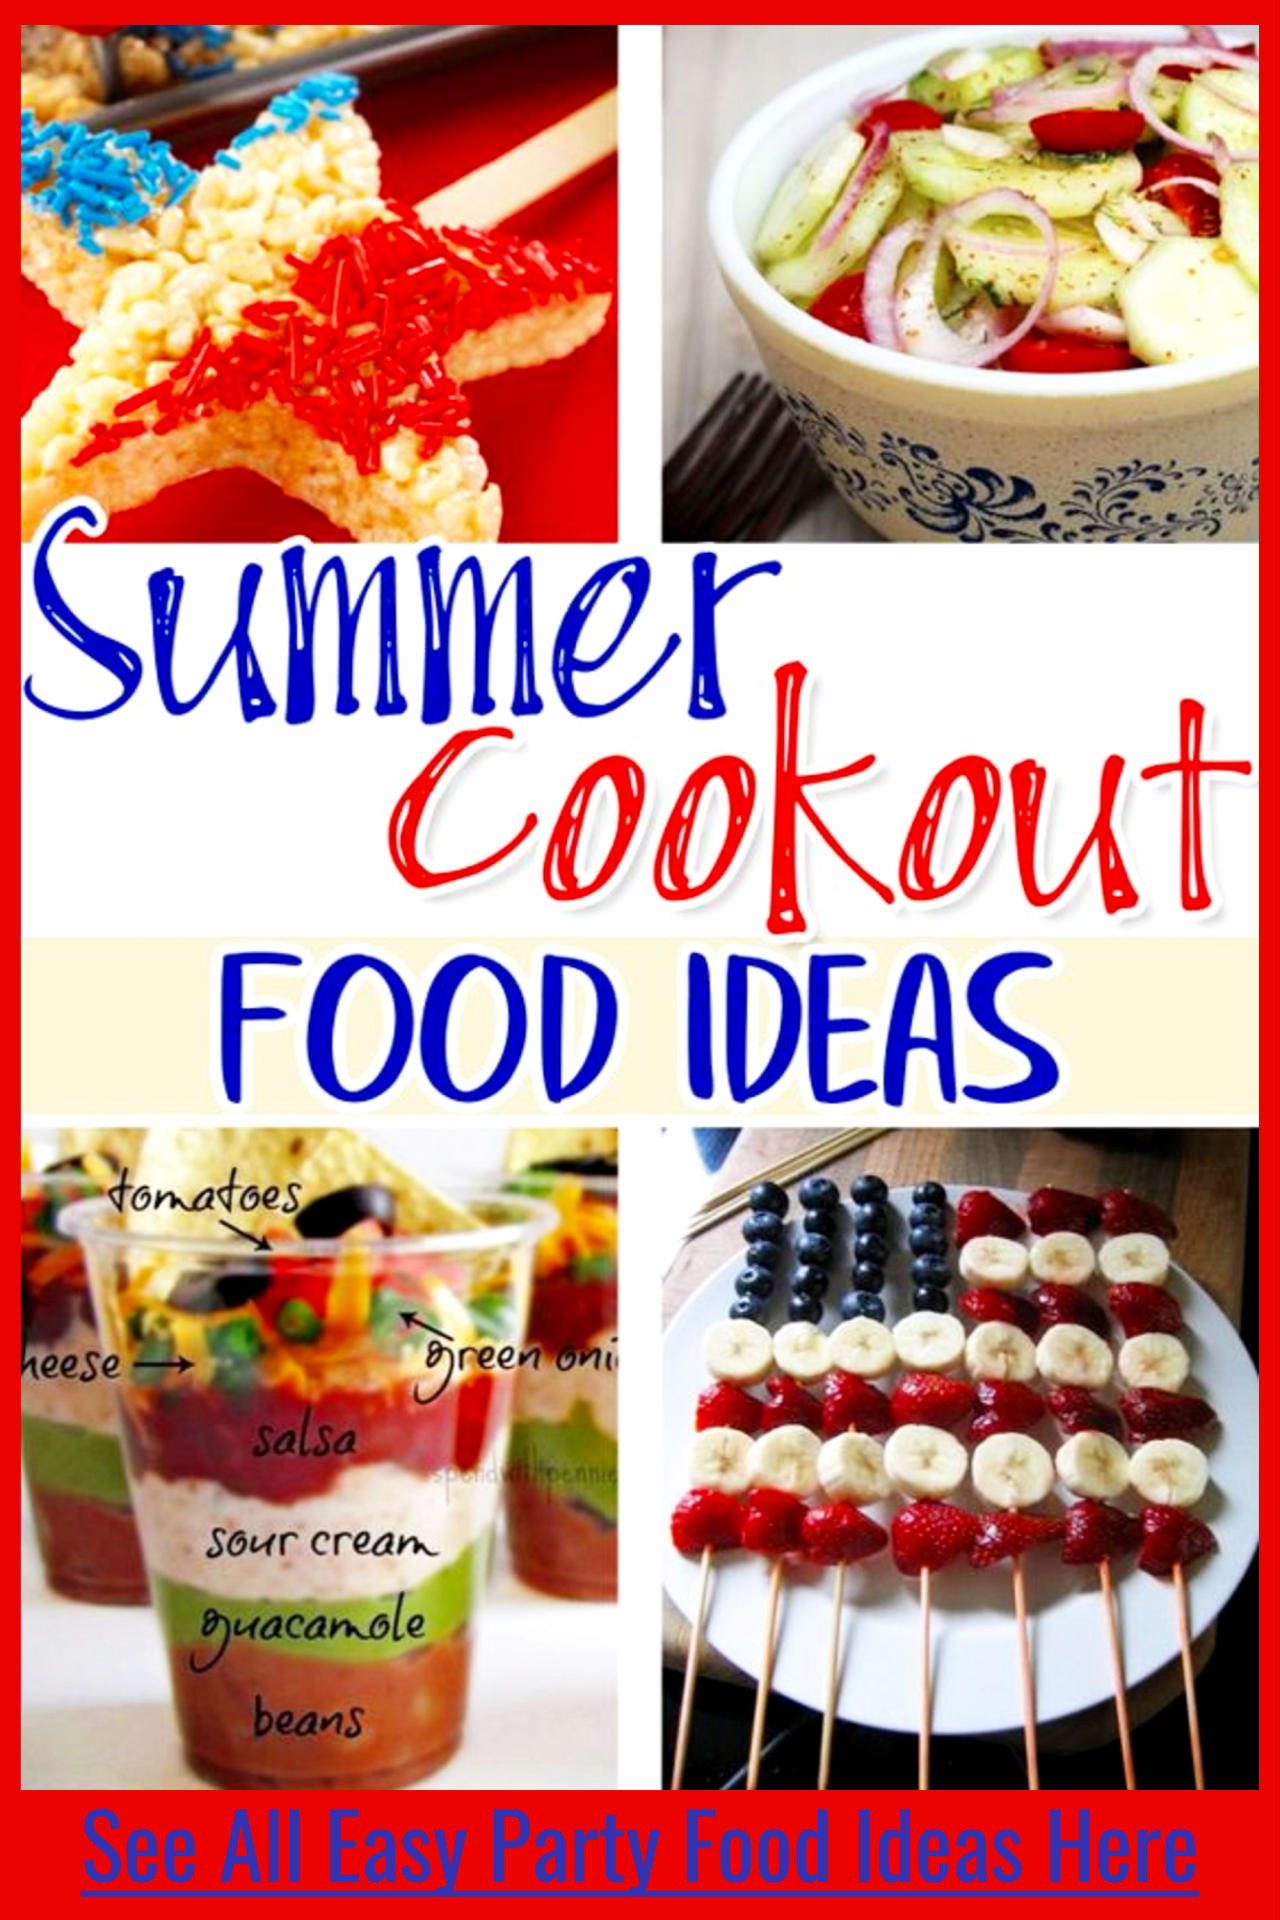 4th of July party food ideas for a crowd - easy backyard cookout food ideas for a 4th of July party or any outdoor summer party